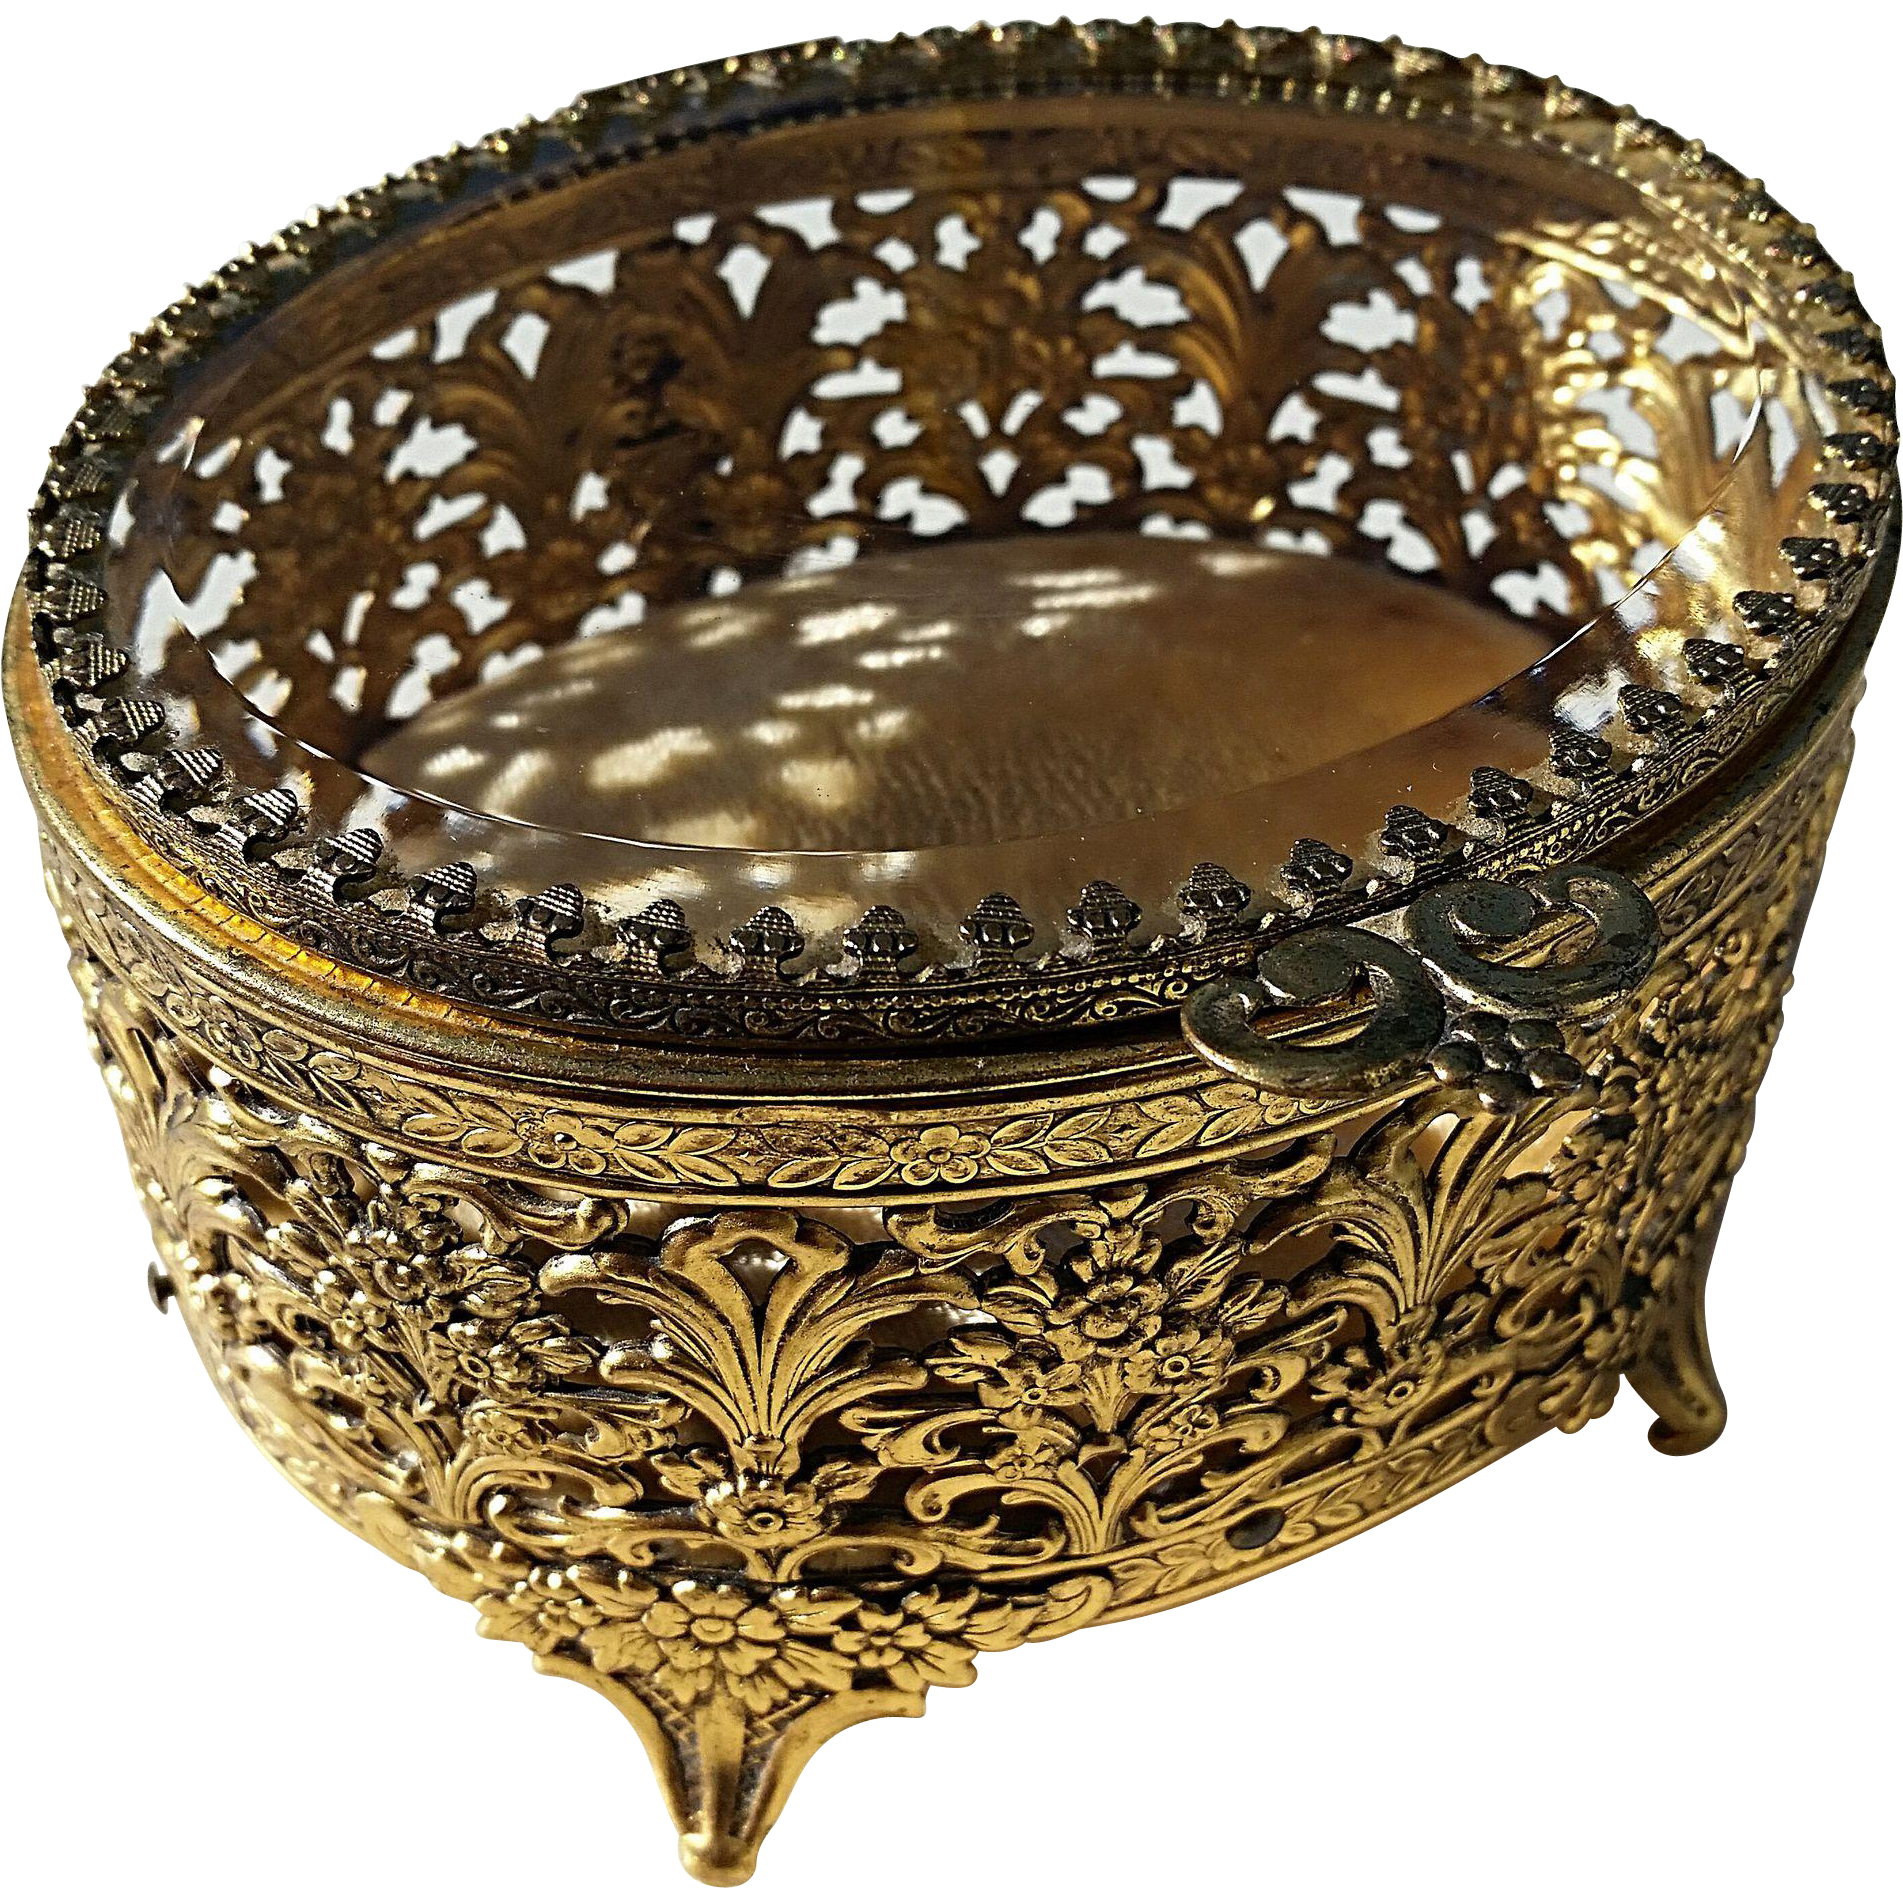 Ormolu jewelry casket, gold gilt filigree, Matson